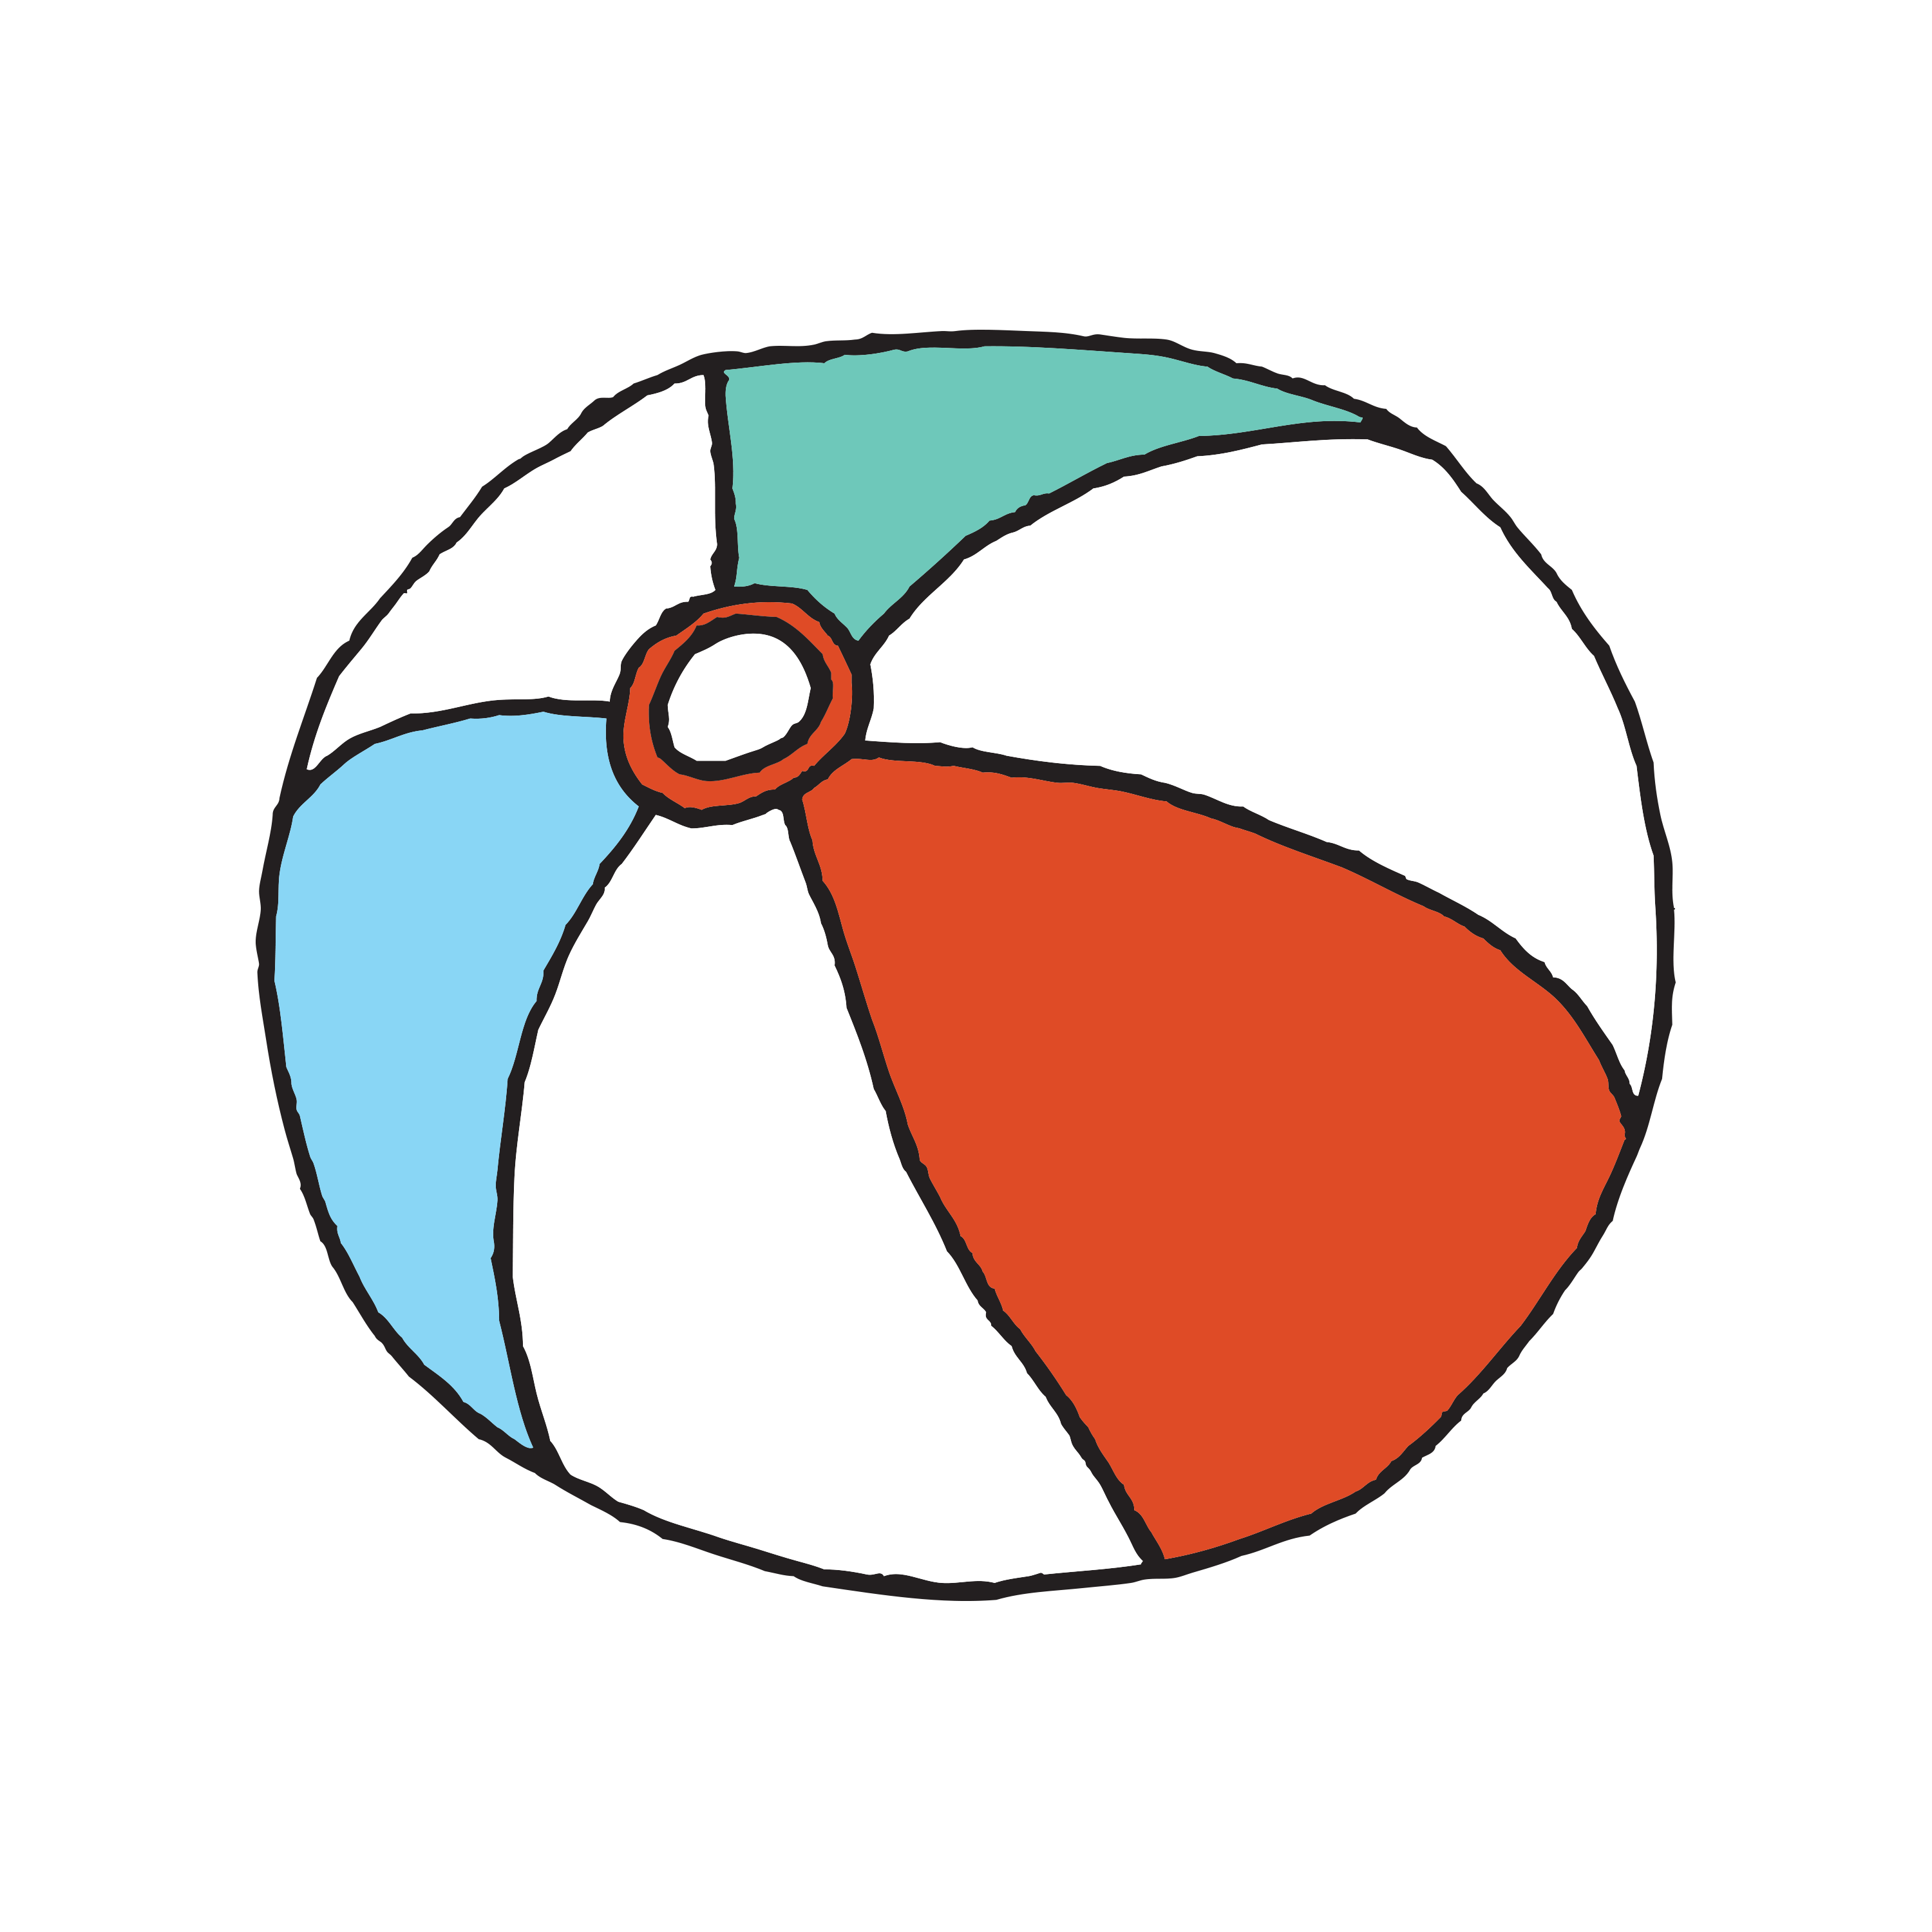 Beach Ball Drawing | Free download on ClipArtMag